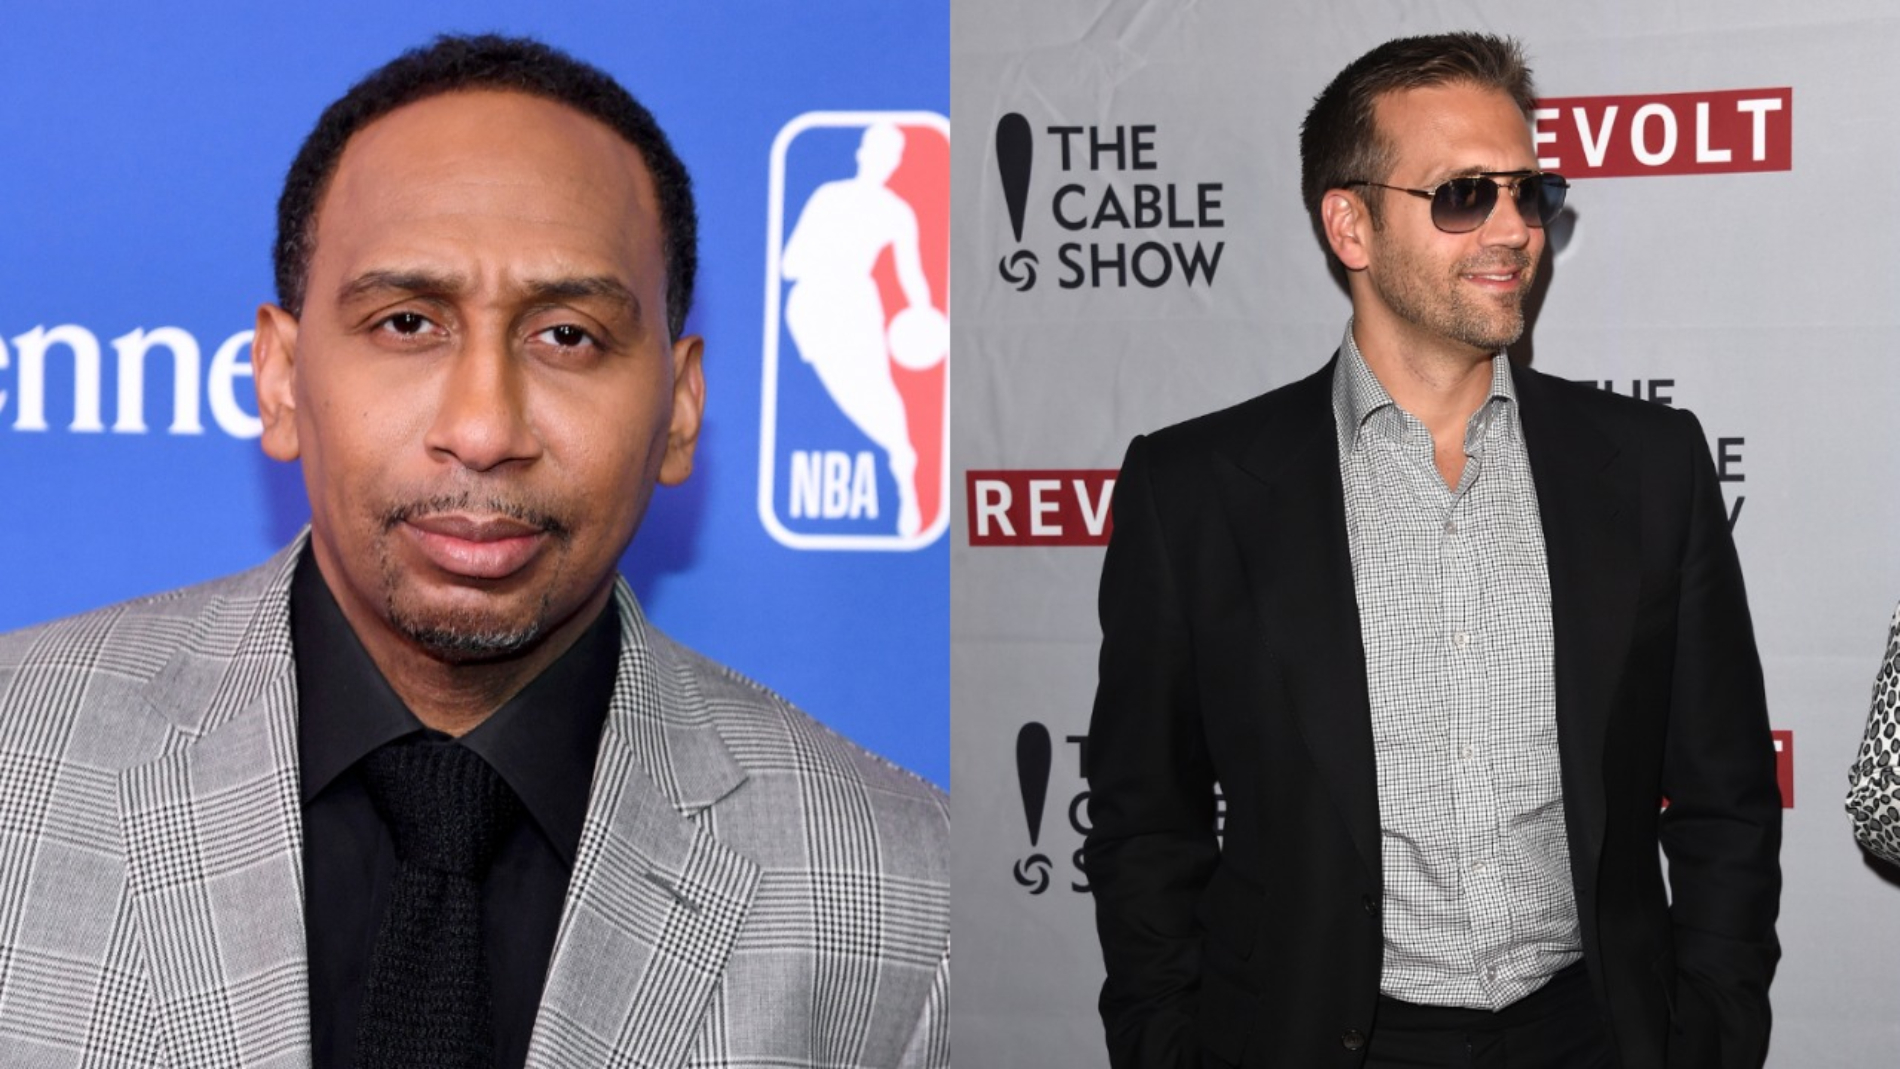 'First Take' stars Stephen A. Smith and Max Kellerman have both been pretty successful on ESPN. So, who has a higher net worth?